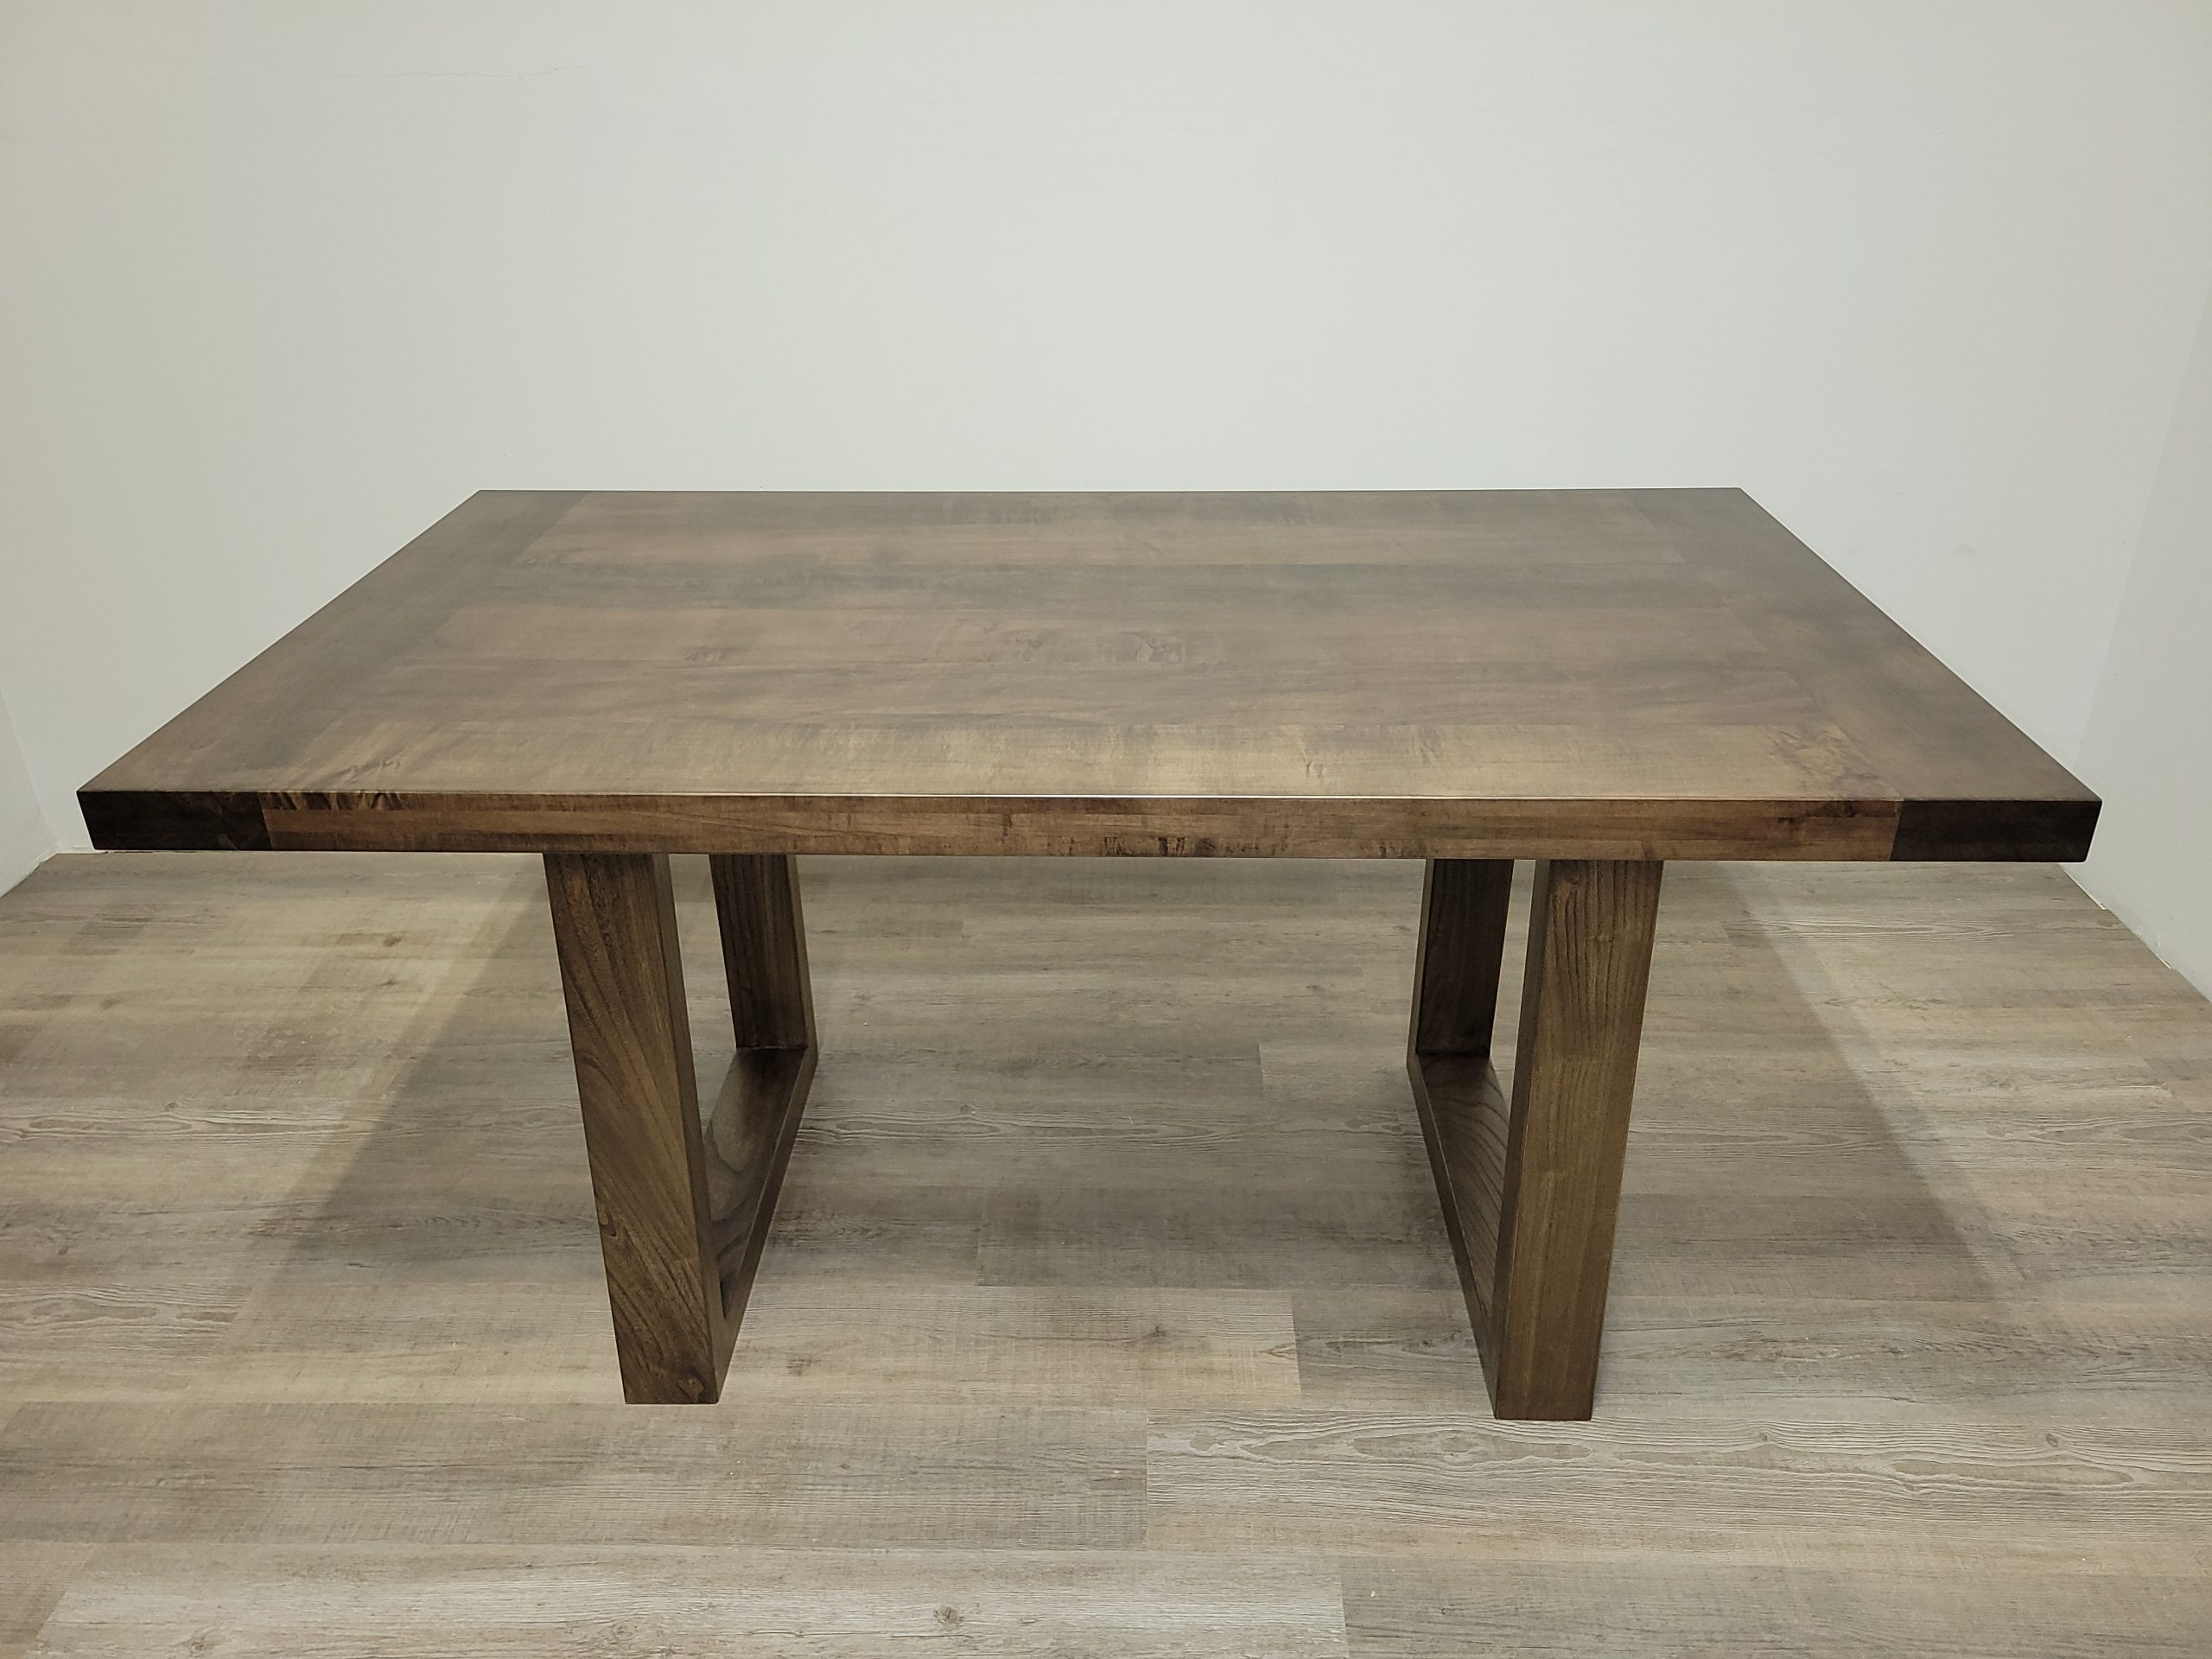 https://competitivewoodcraft.com/wp-content/uploads/2021/03/Coffee-Table-scaled.jpg